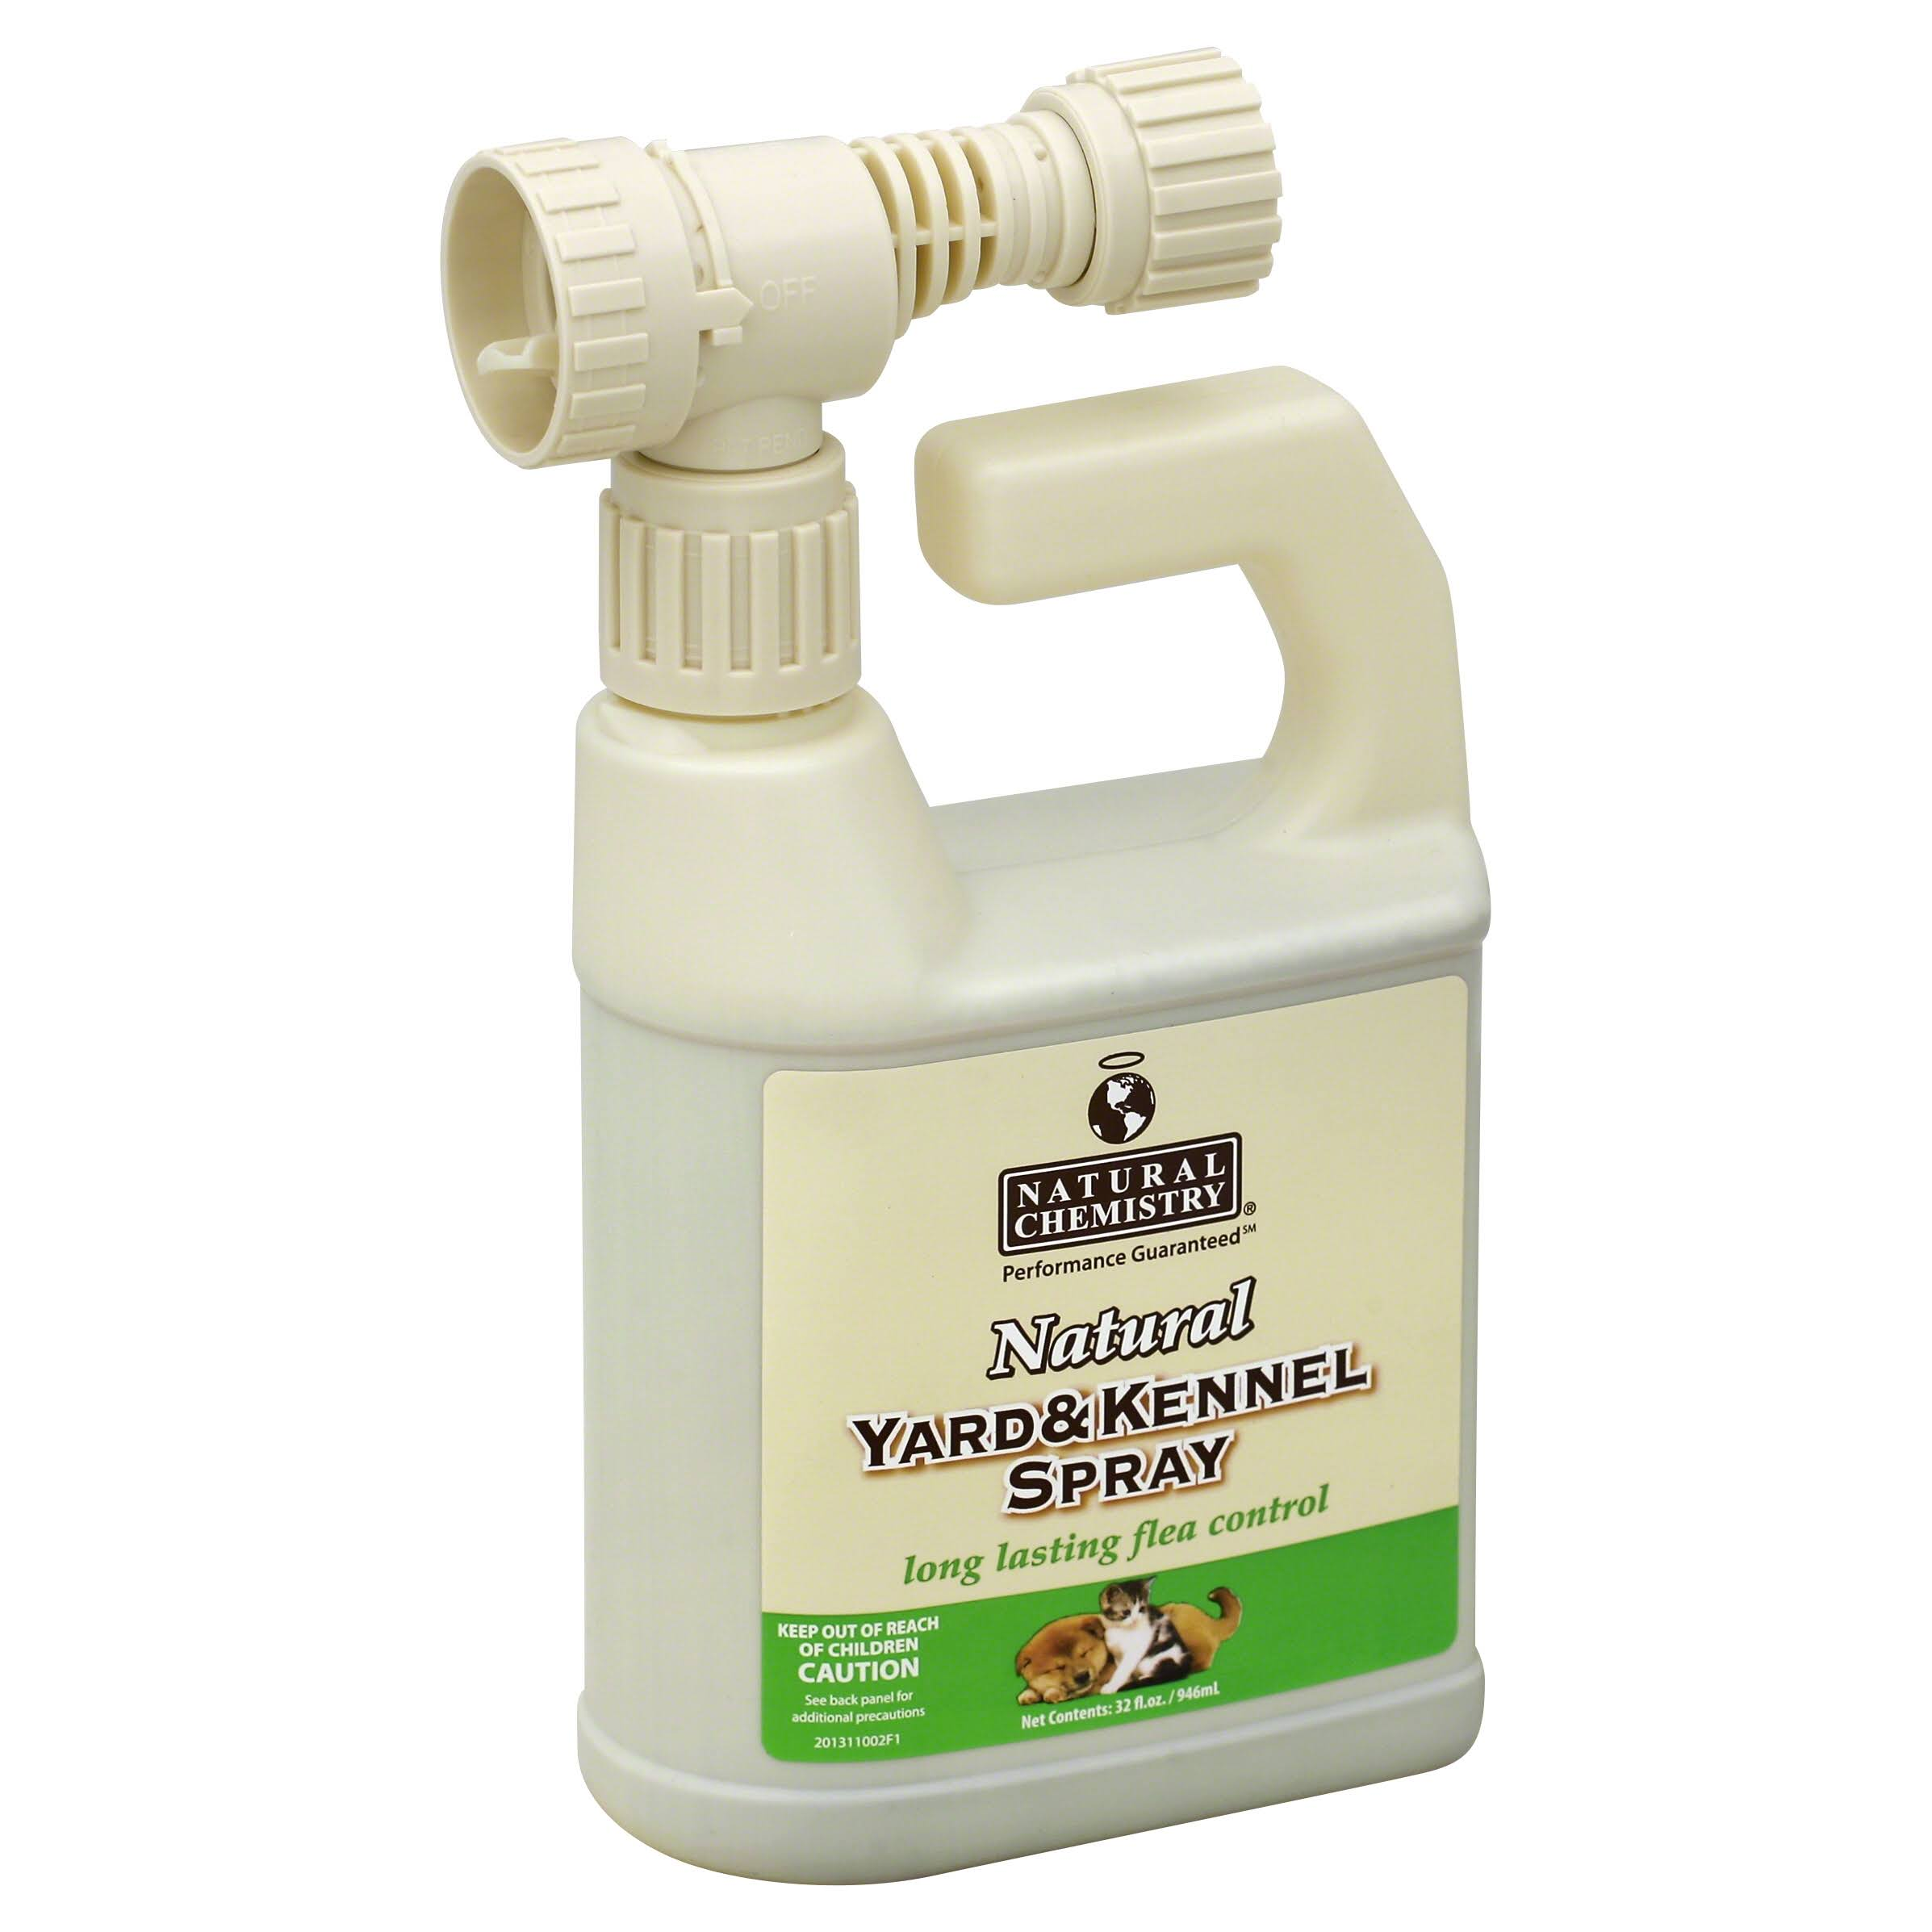 Natural Chemistry Yard & Kennel Spray - 32 oz